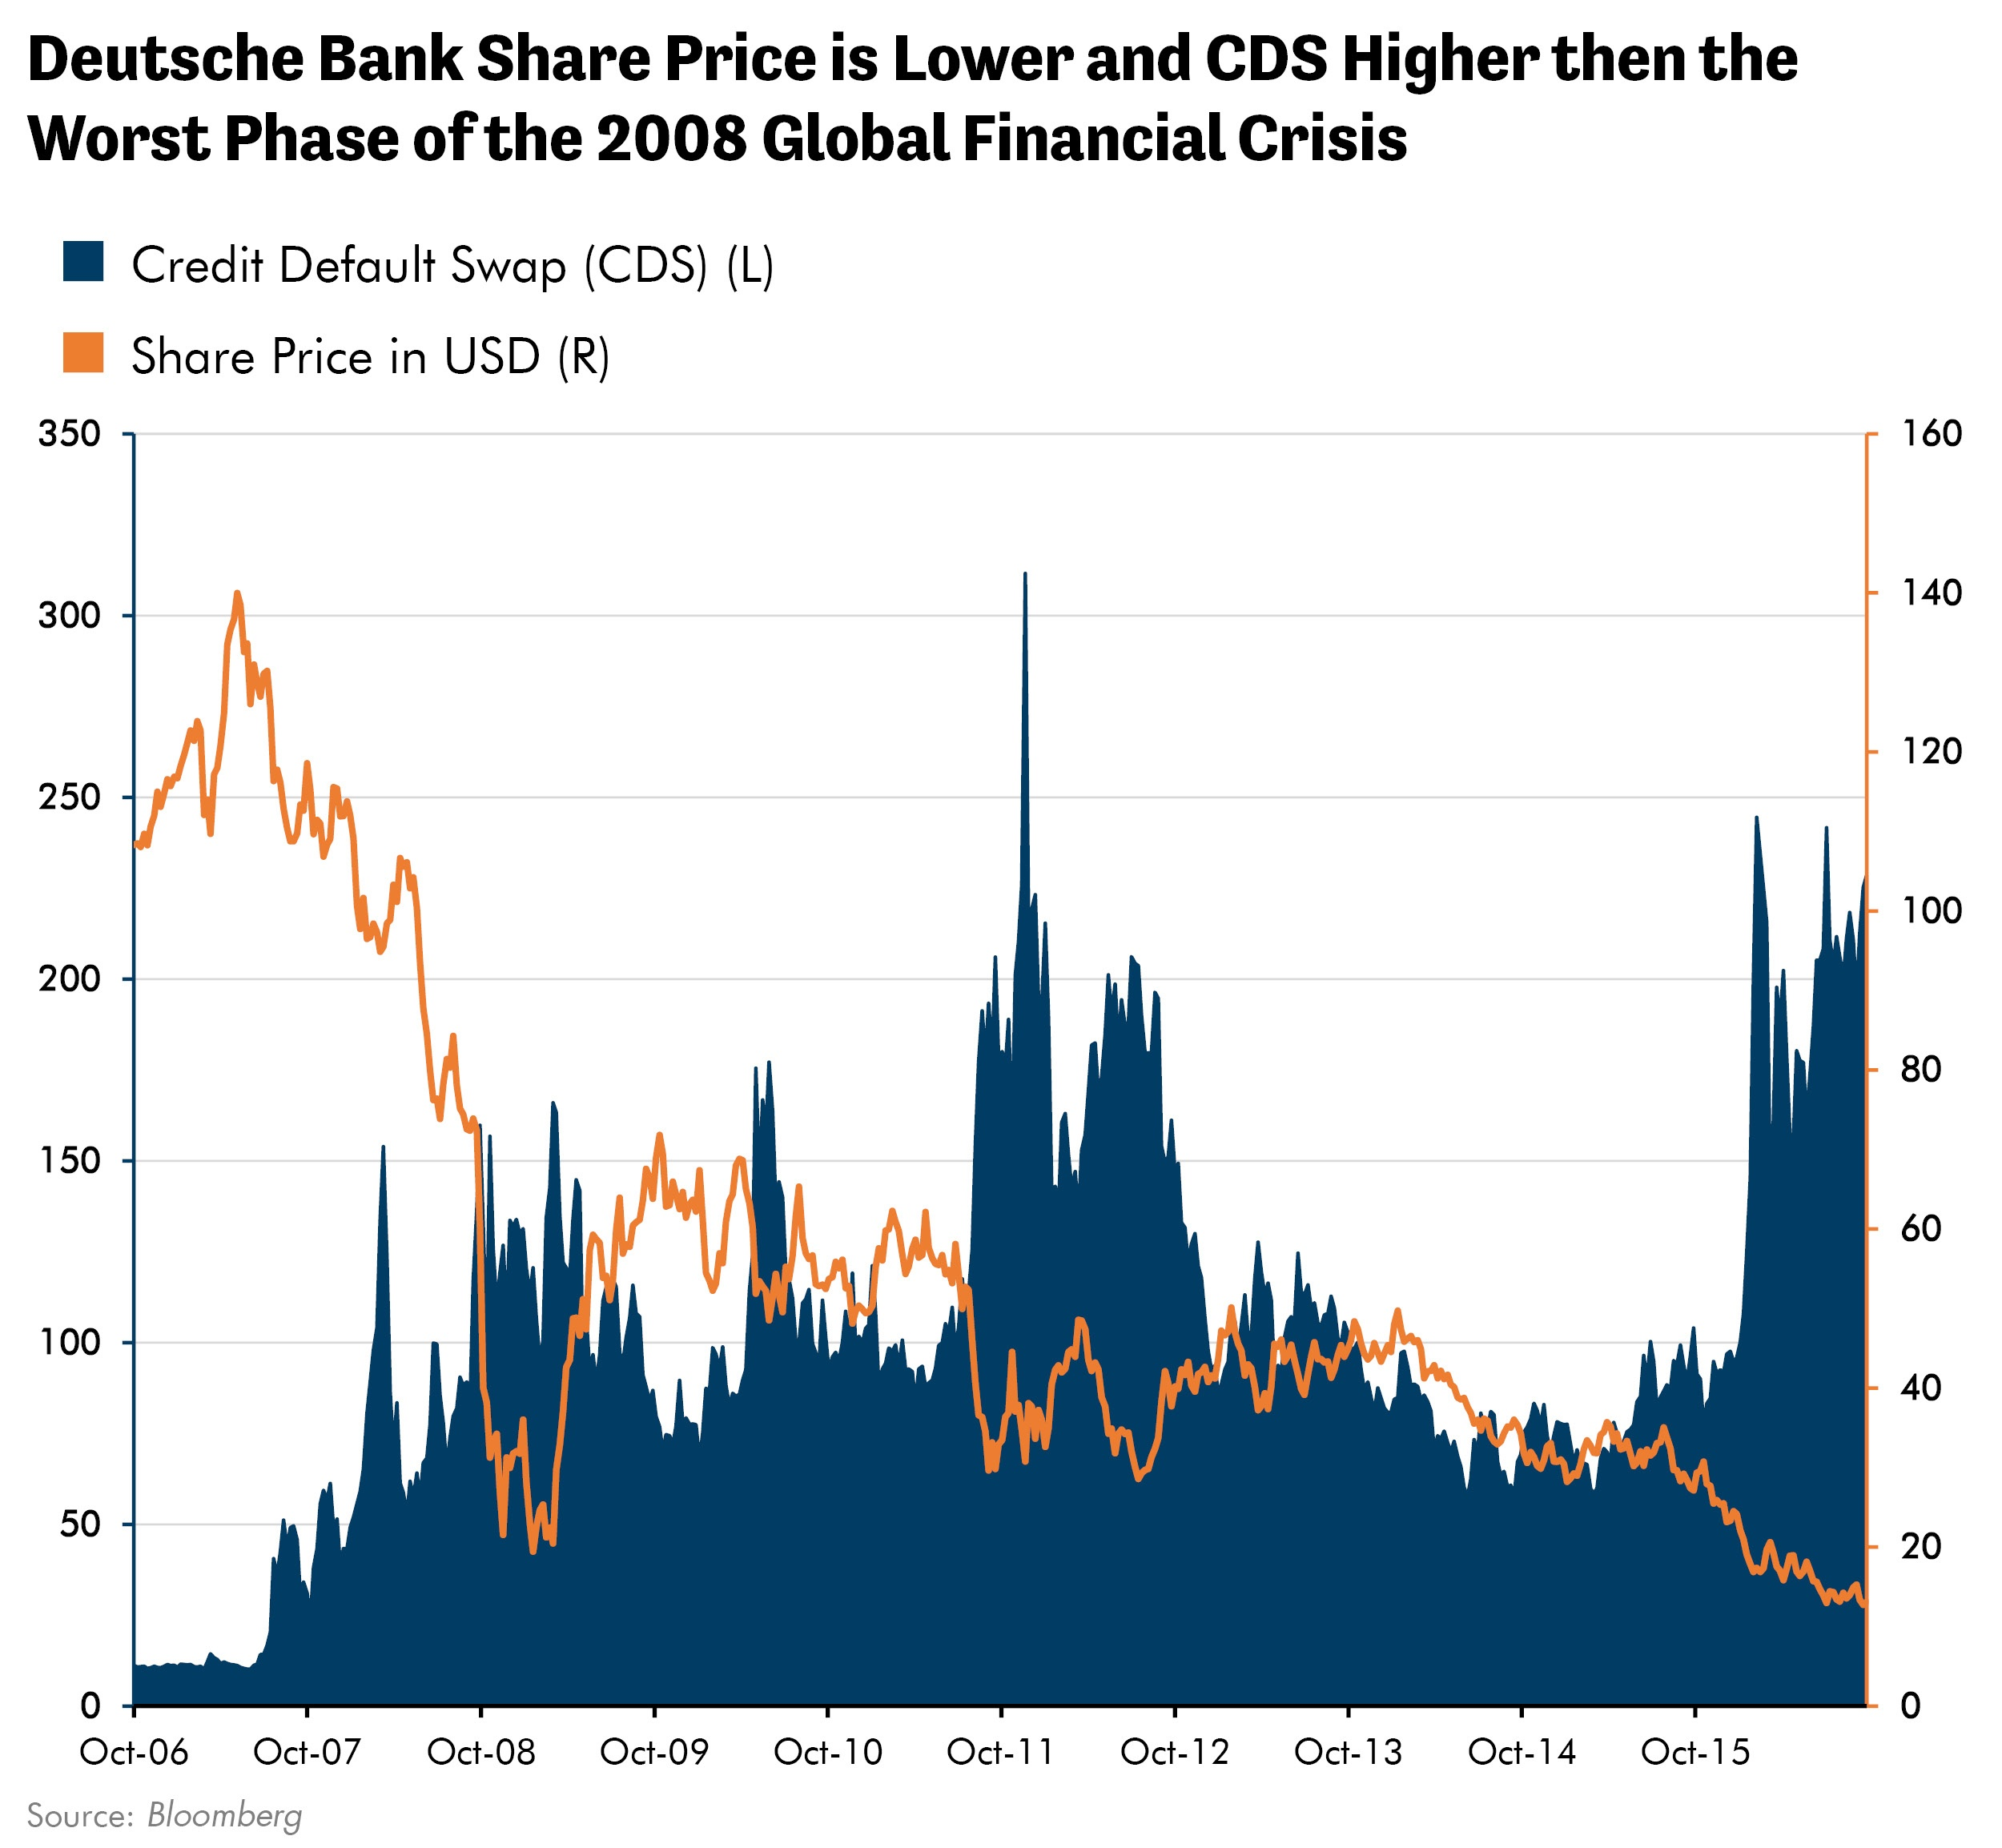 Deutsche Bank Share Price is Lower and CDS Higher then the Worst Phase of the 2008 Global Financial Crisis